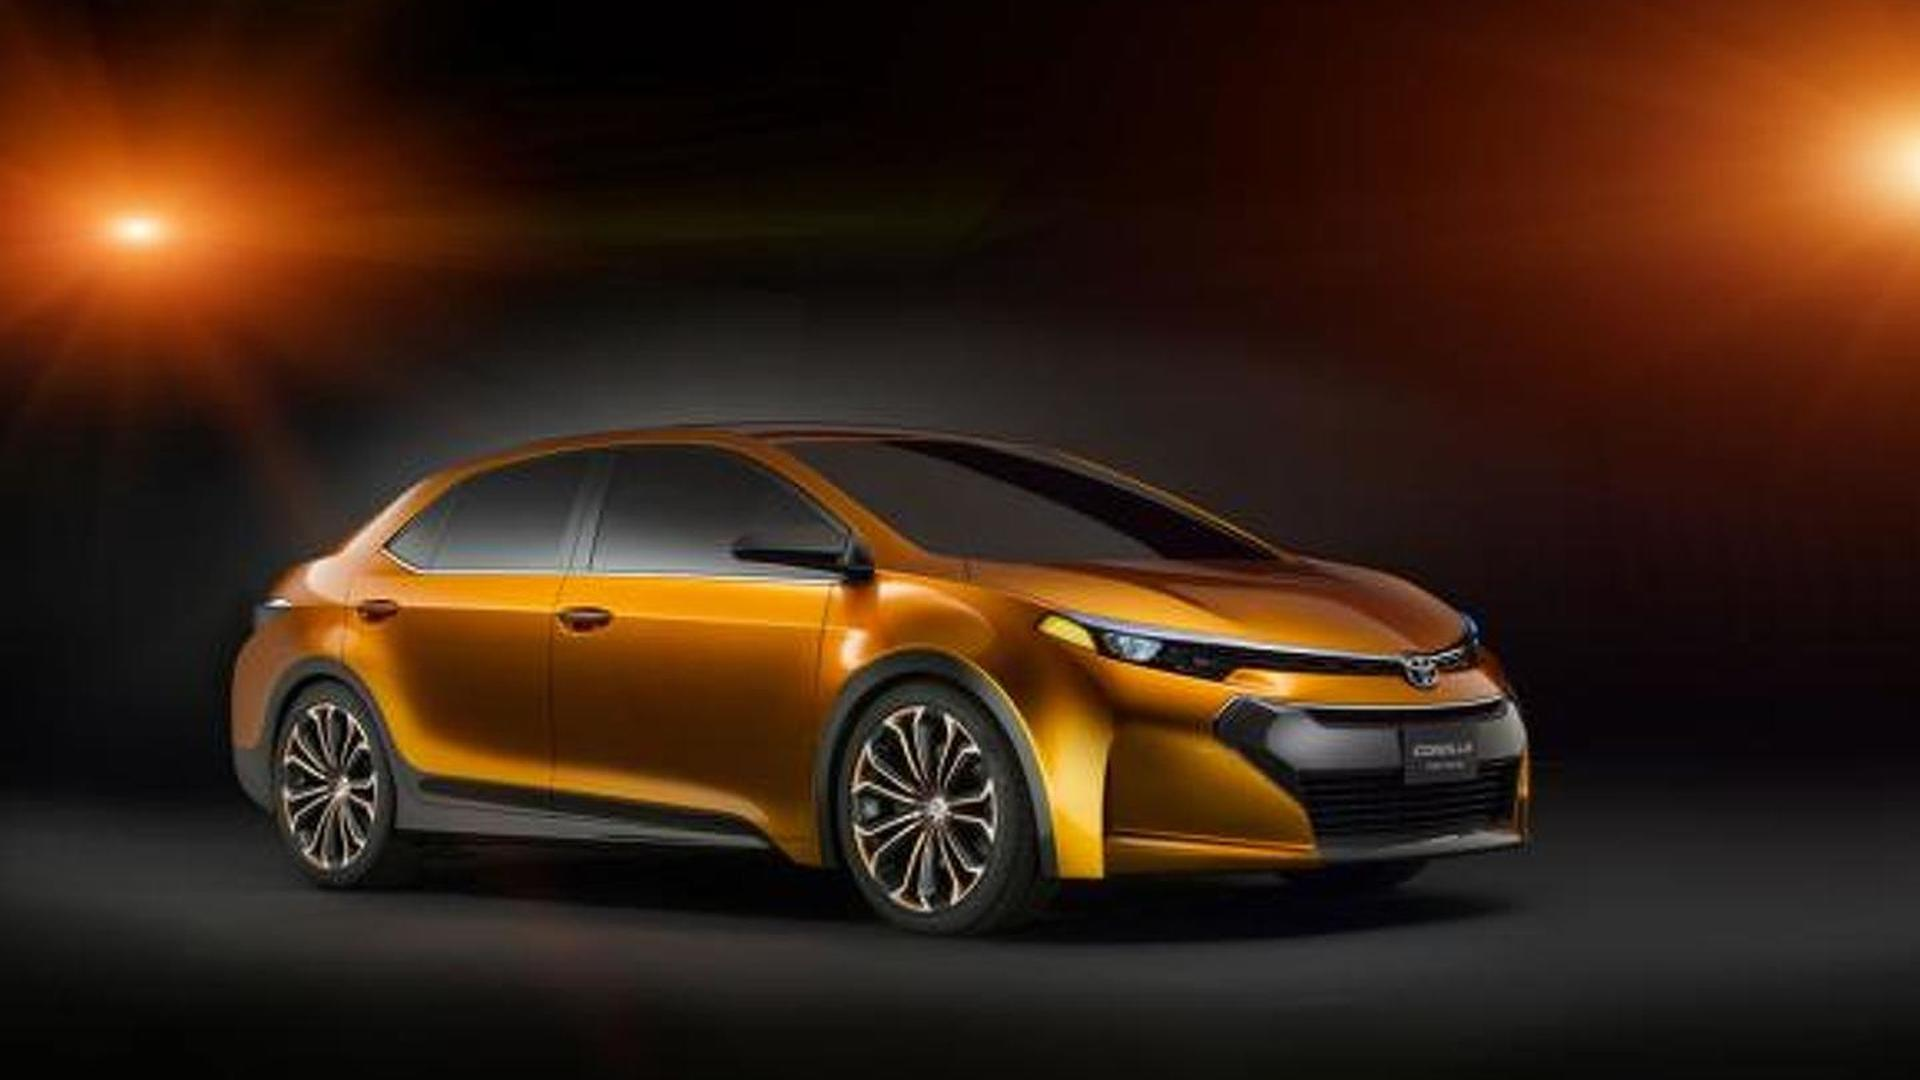 Toyota dealer leaks 2014 Corolla ordering guide, confirms minor updates - report